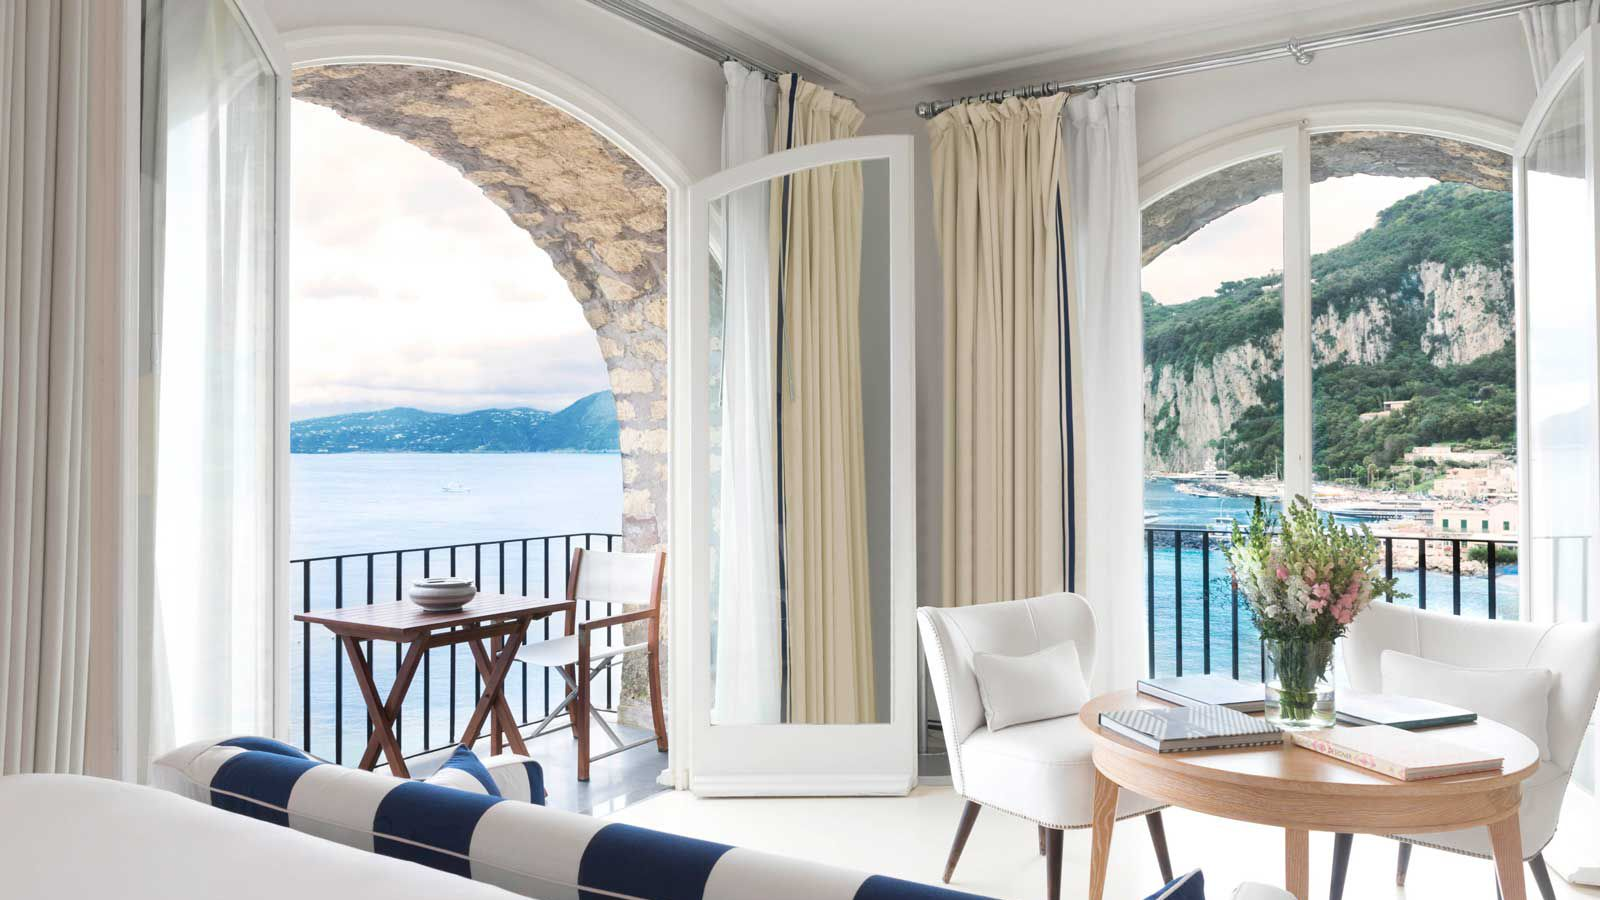 Room at The JK Place Hotel in Capri